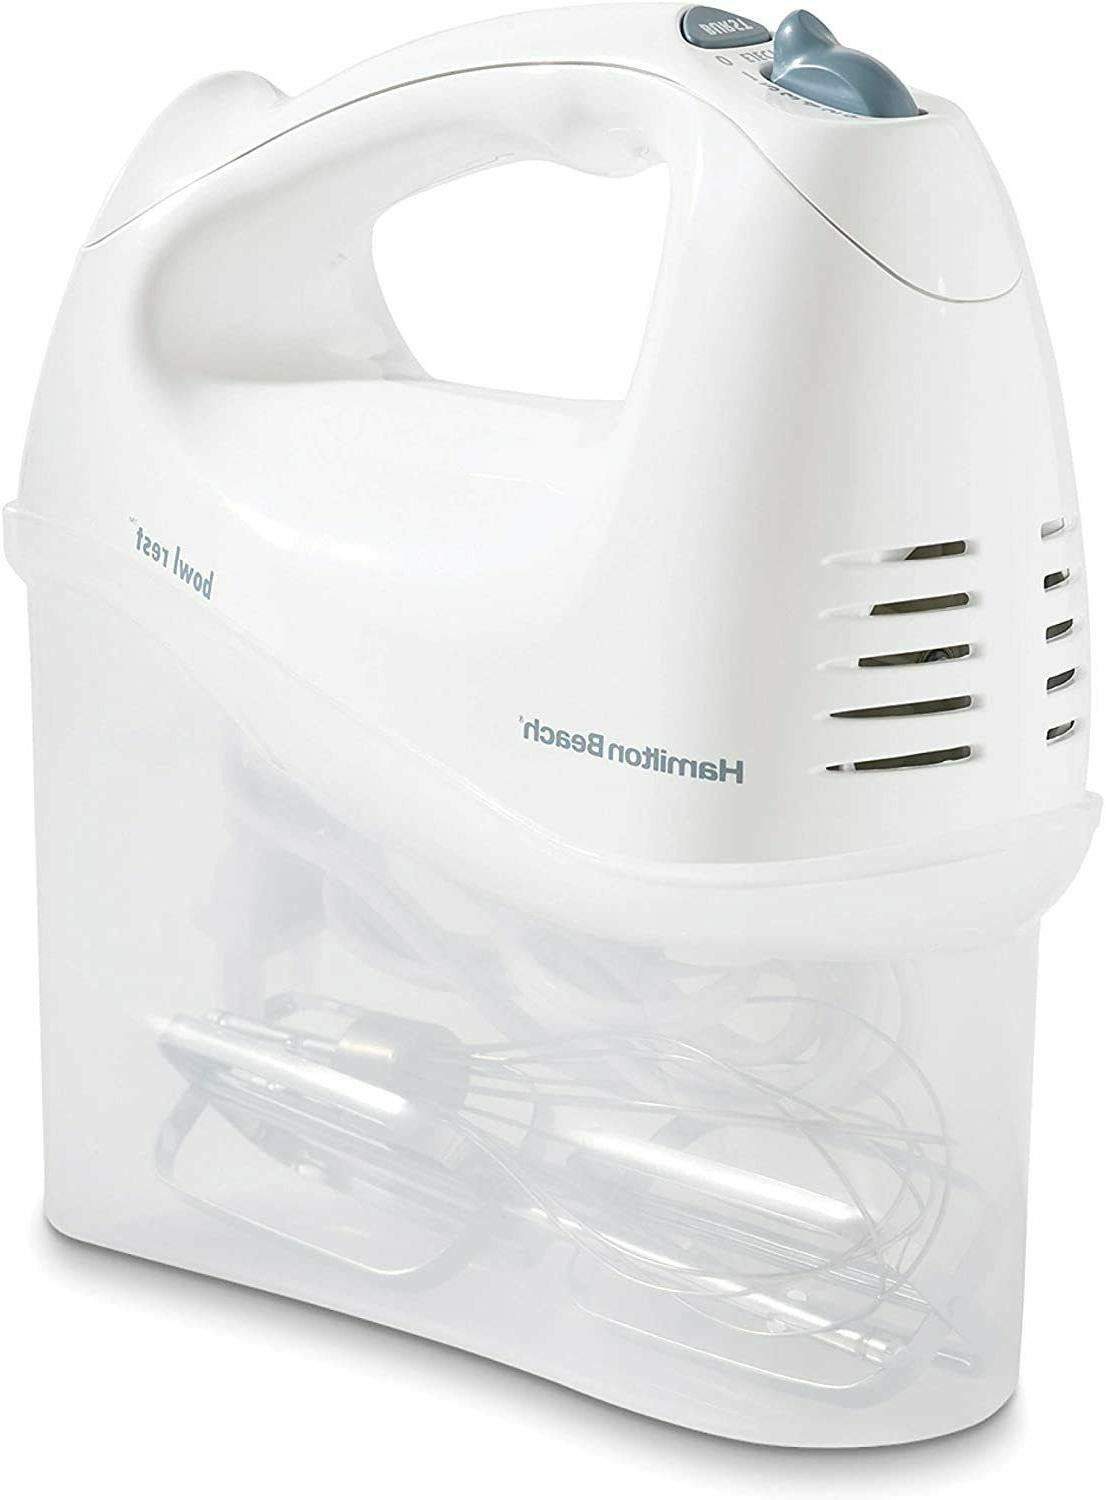 6 speed electric hand mixer 250w